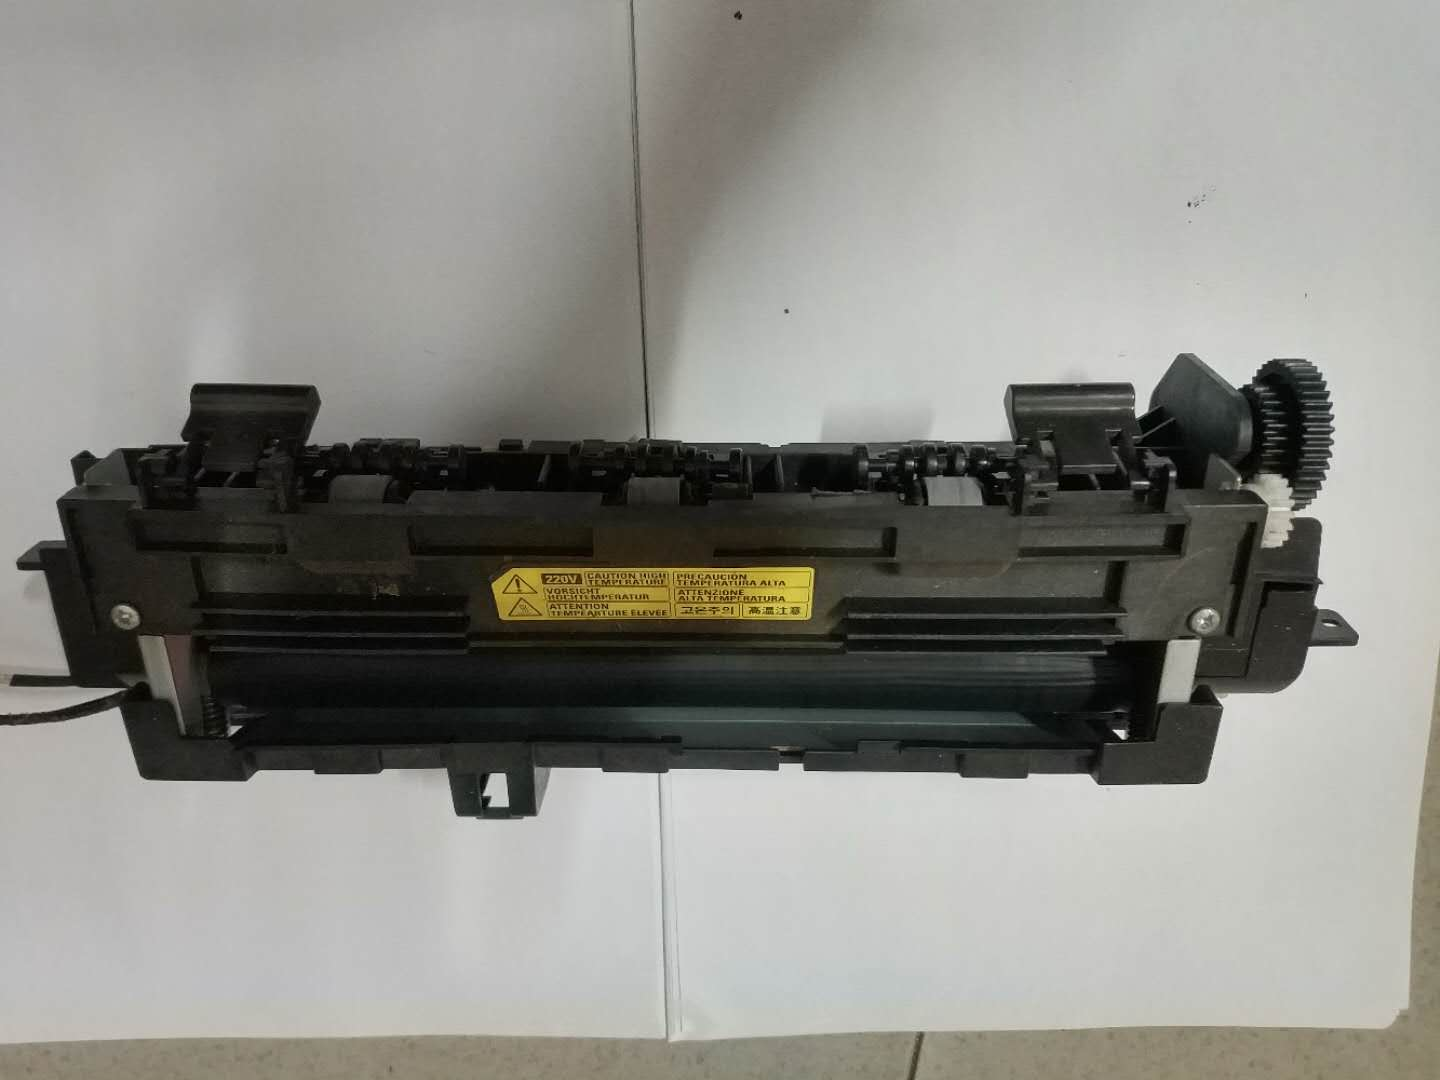 цена на Fuser assembly for Samsung 4521hs 4321ns 4521 4321 for xerox pe220 printer